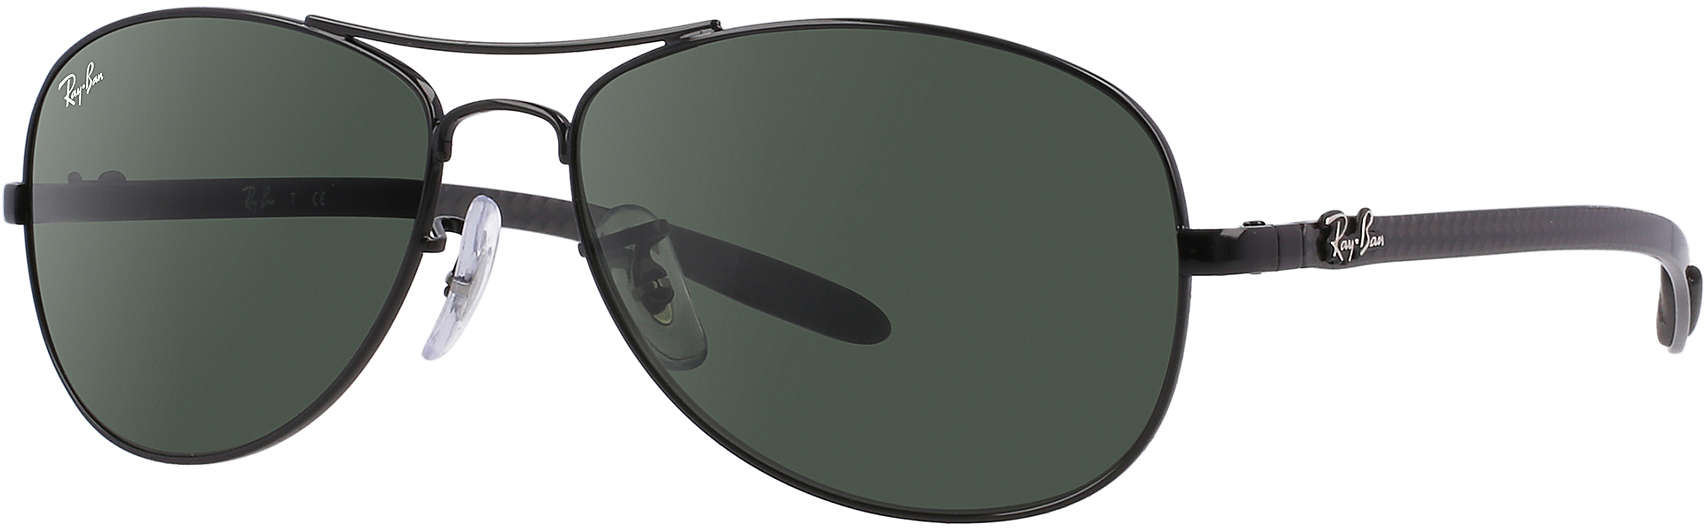 ac6ee5a7d95 Ray-Ban Sunglasses RB8301